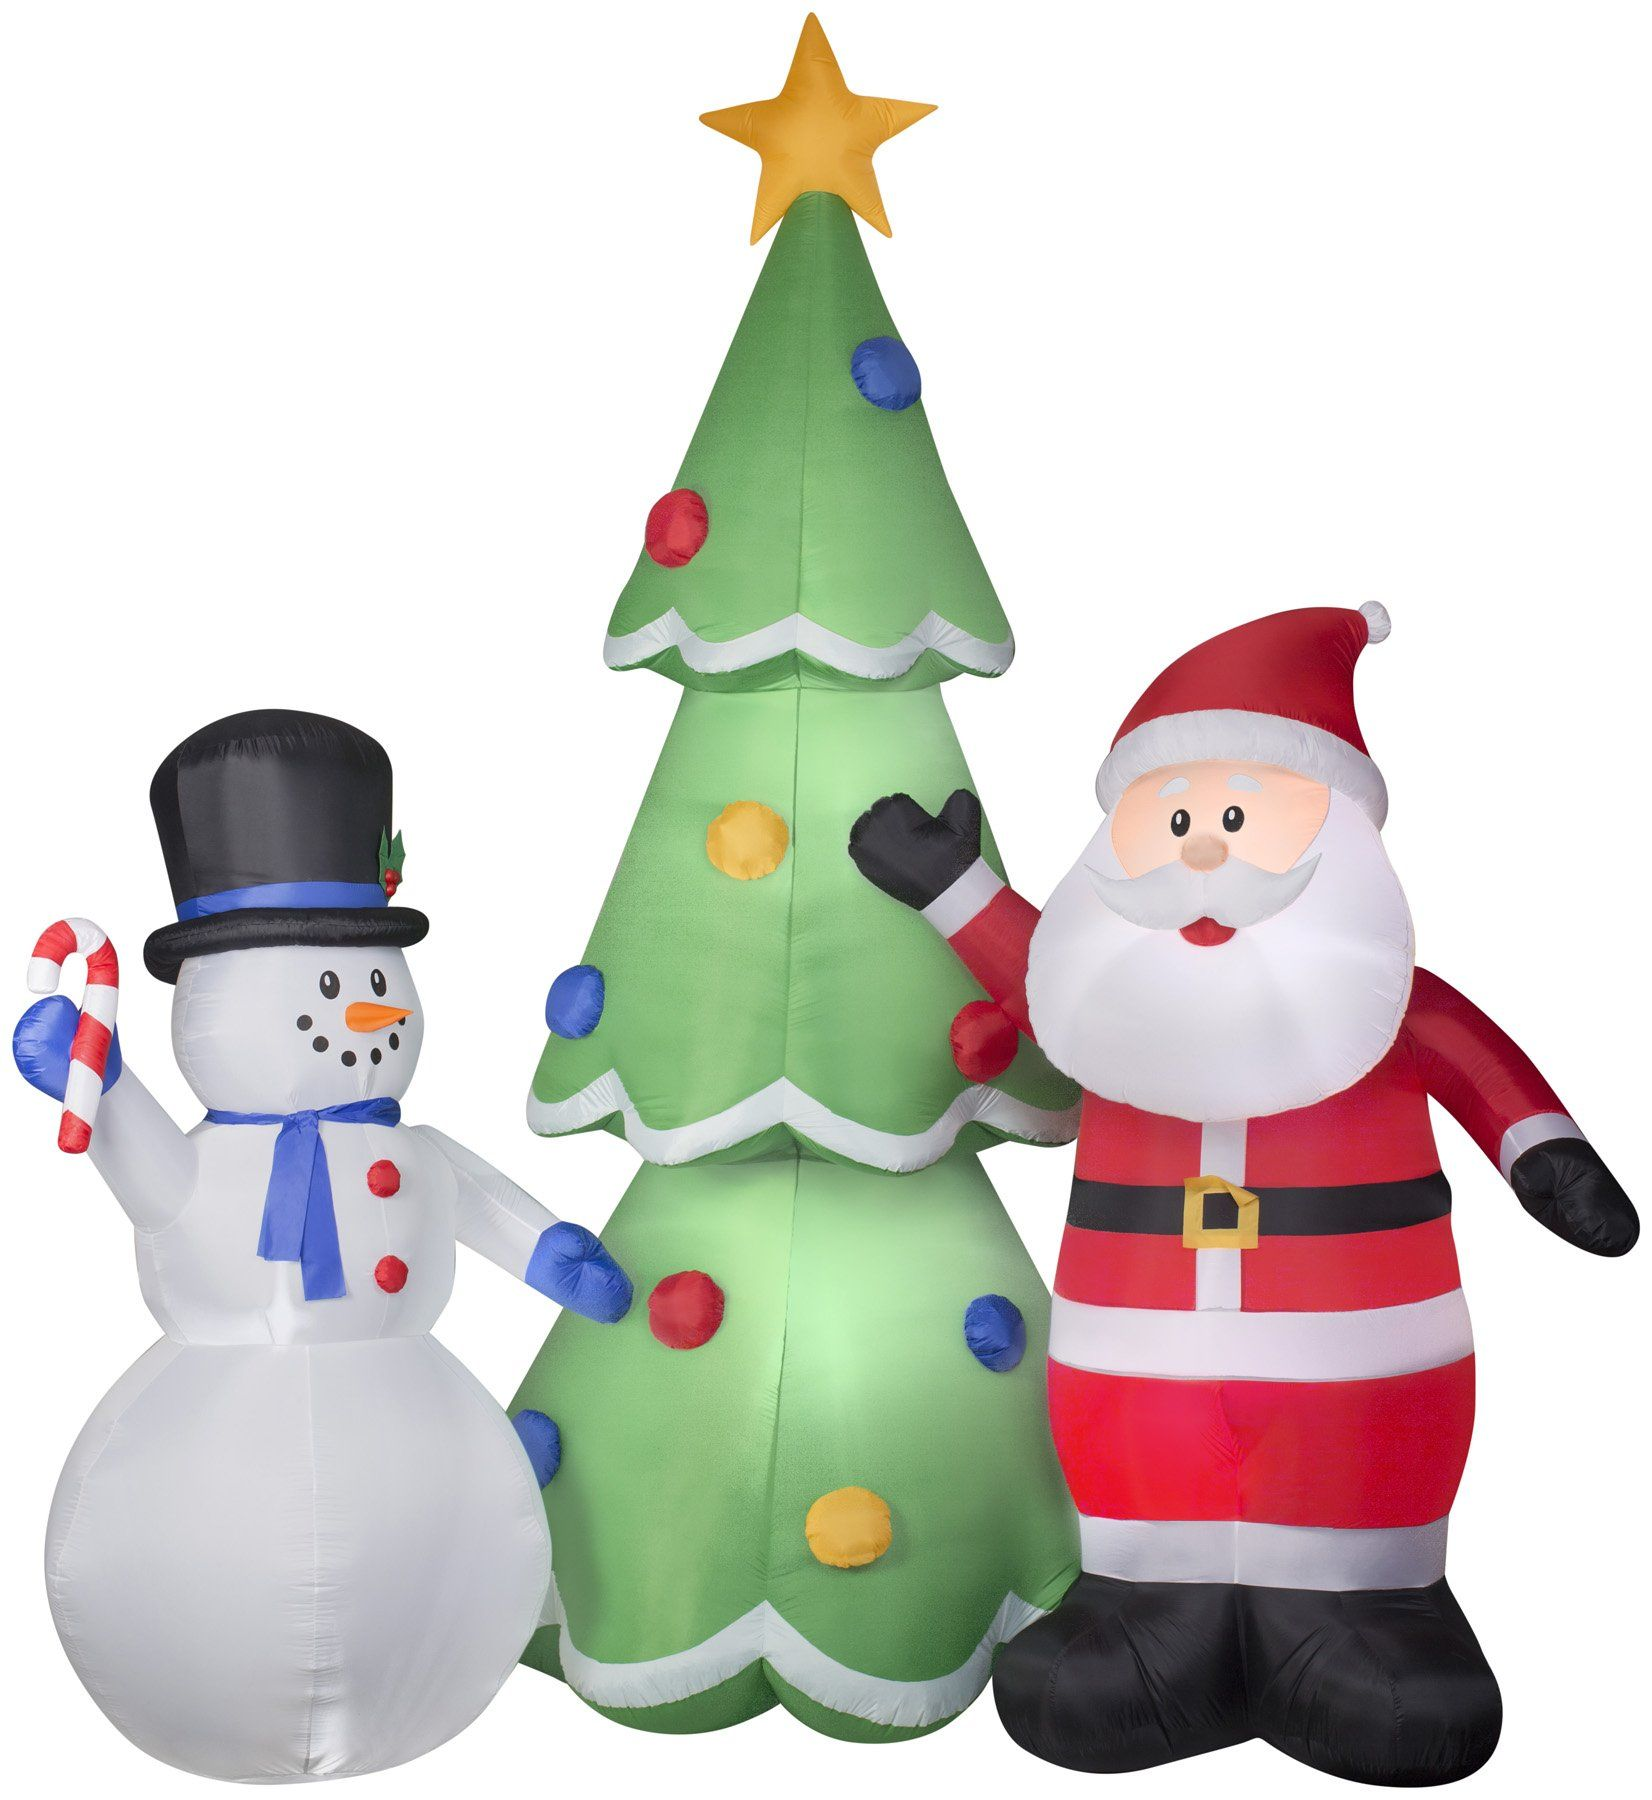 13 Airblown Santa And Snowman W Tree Christmas Inflatable Christmas Inflatables Snowman Christmas Tree Inflatable Decorations